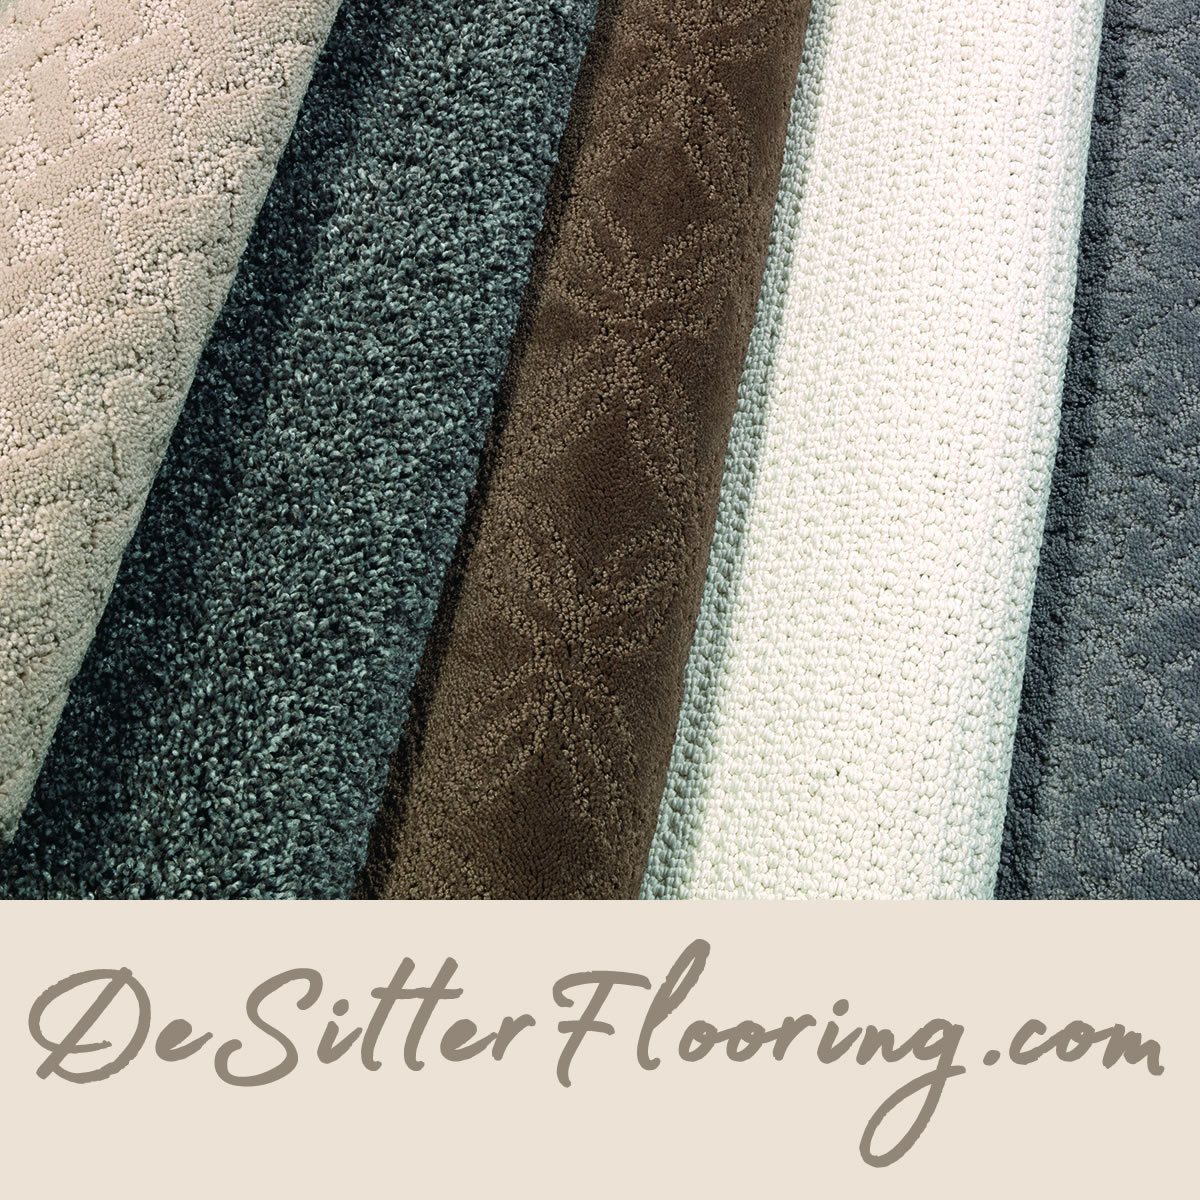 New carpet installation in carol stream 60188 desitter flooring carpet from desitter flooring is always fashionable call 630 948 5582 contact us online today or stop by our showrooms for a free estimate on new carpet tyukafo